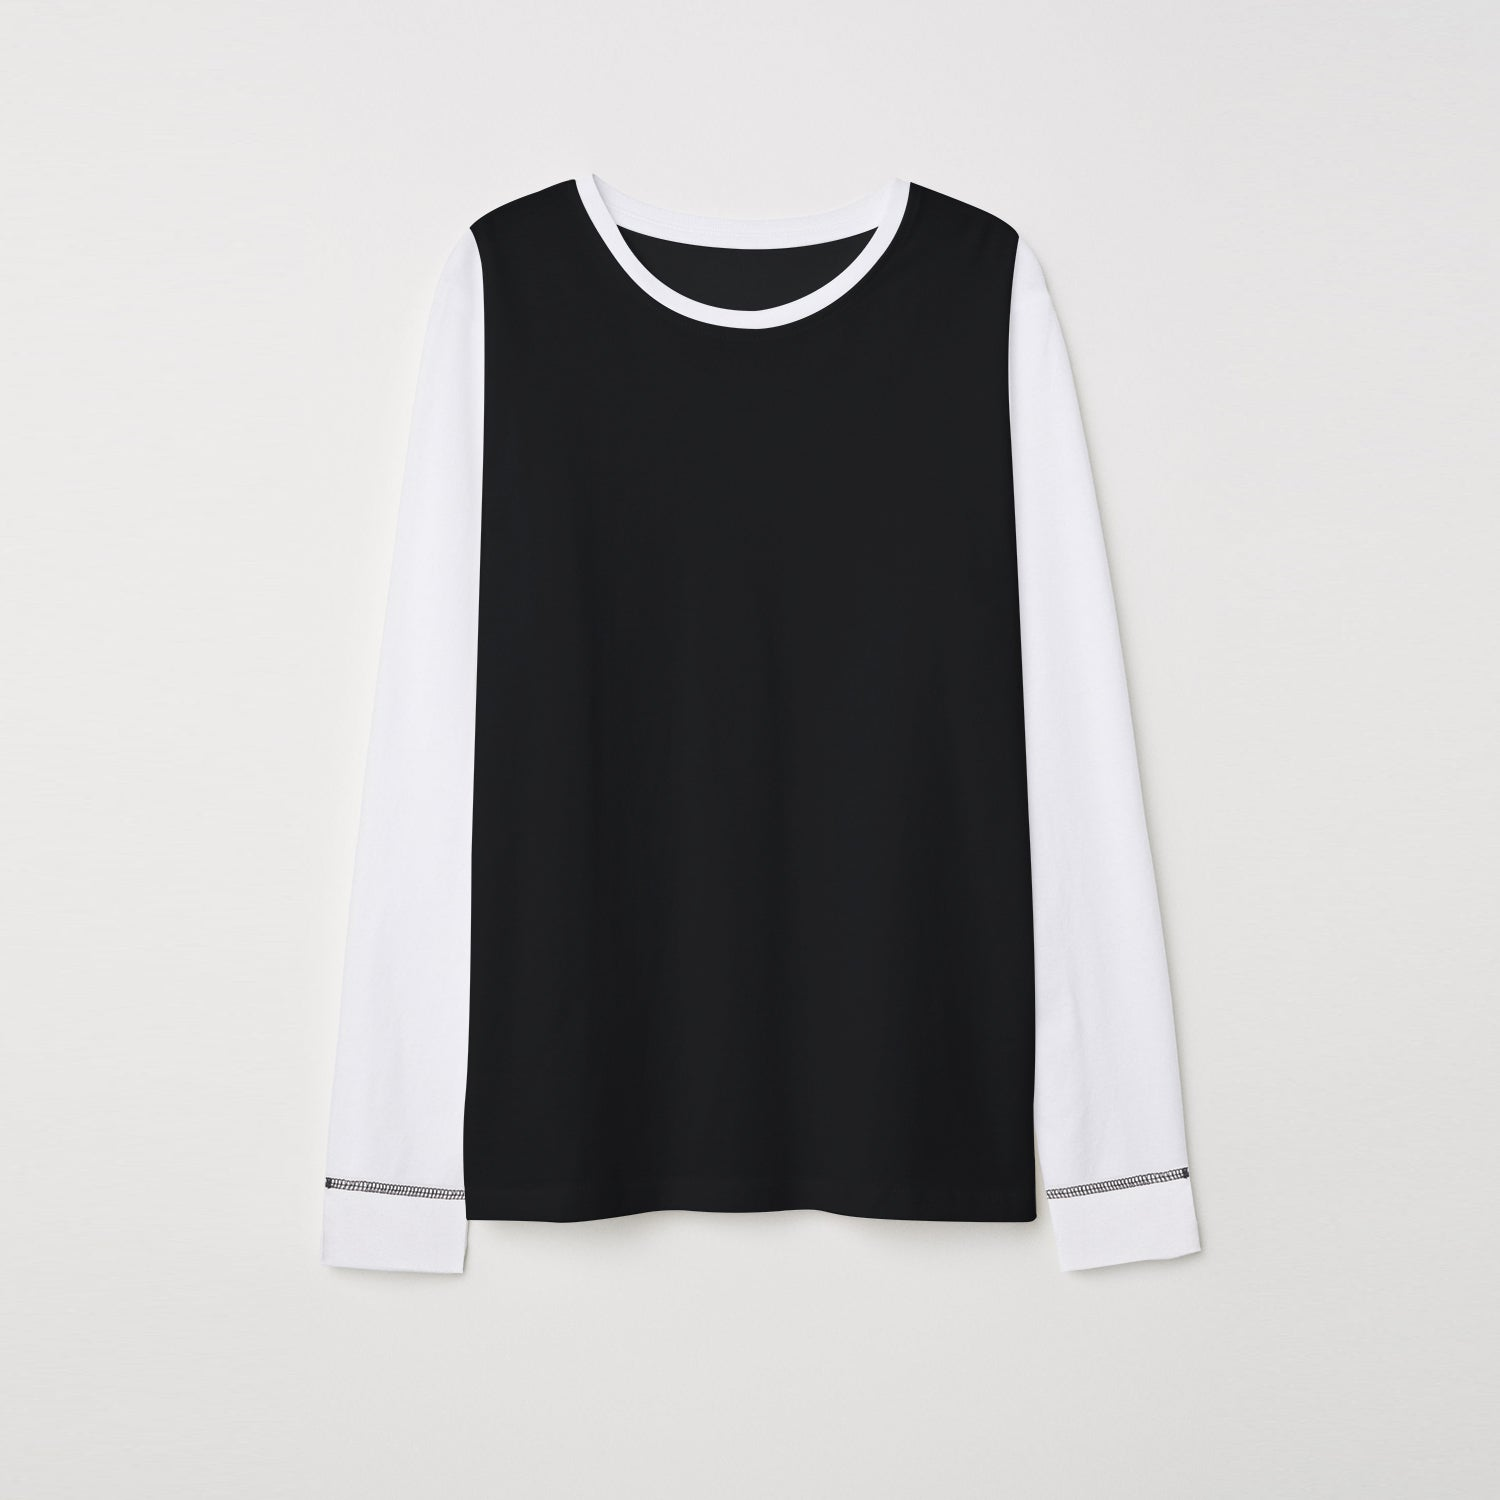 brandsego - NEXT Single Jersey Long Sleeve Tee Shirt For Kids-White & Black-BE9343